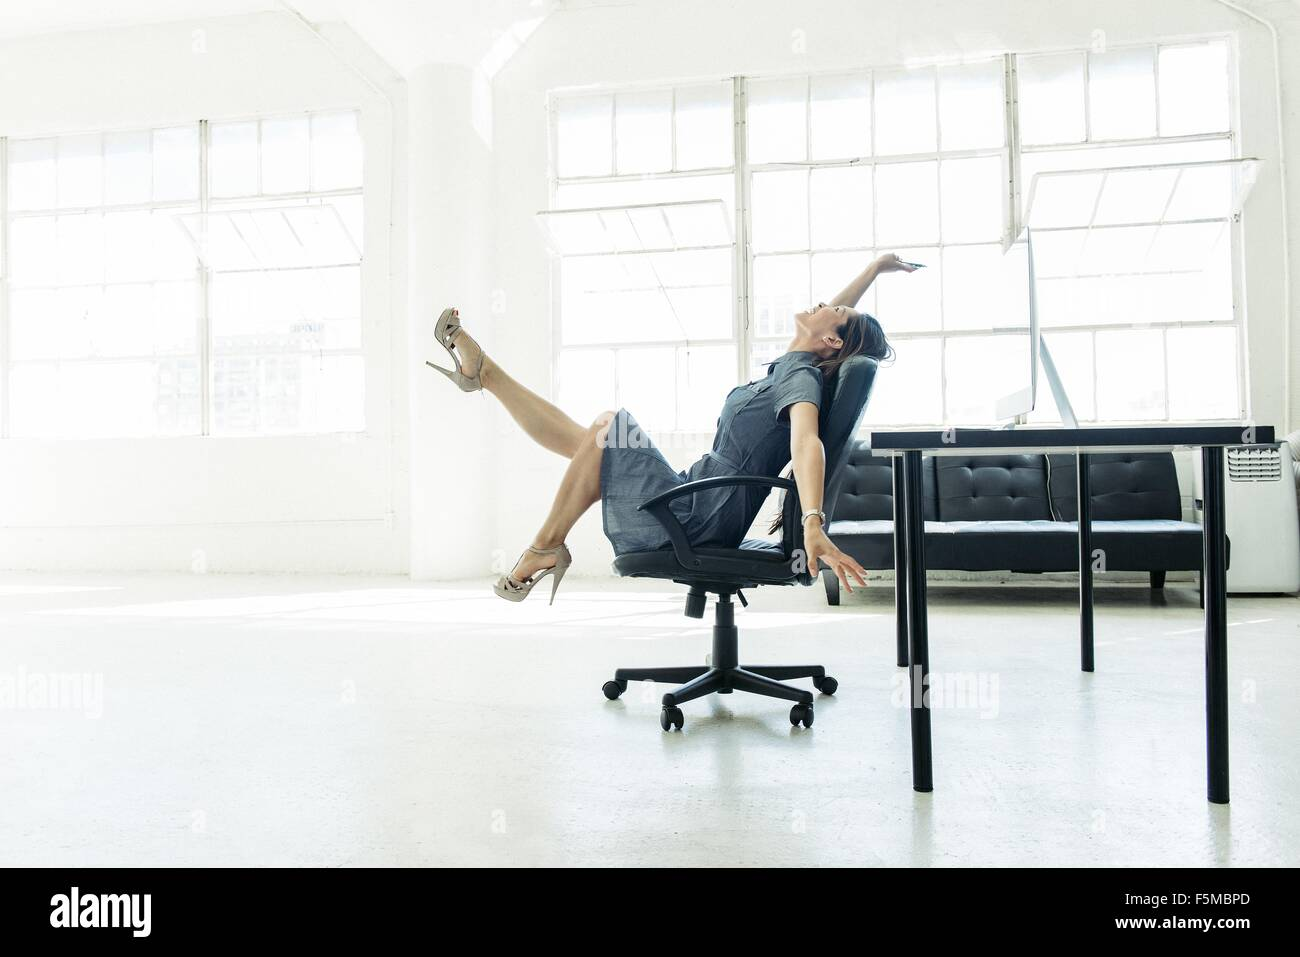 Businesswoman excited on chair by office window - Stock Image